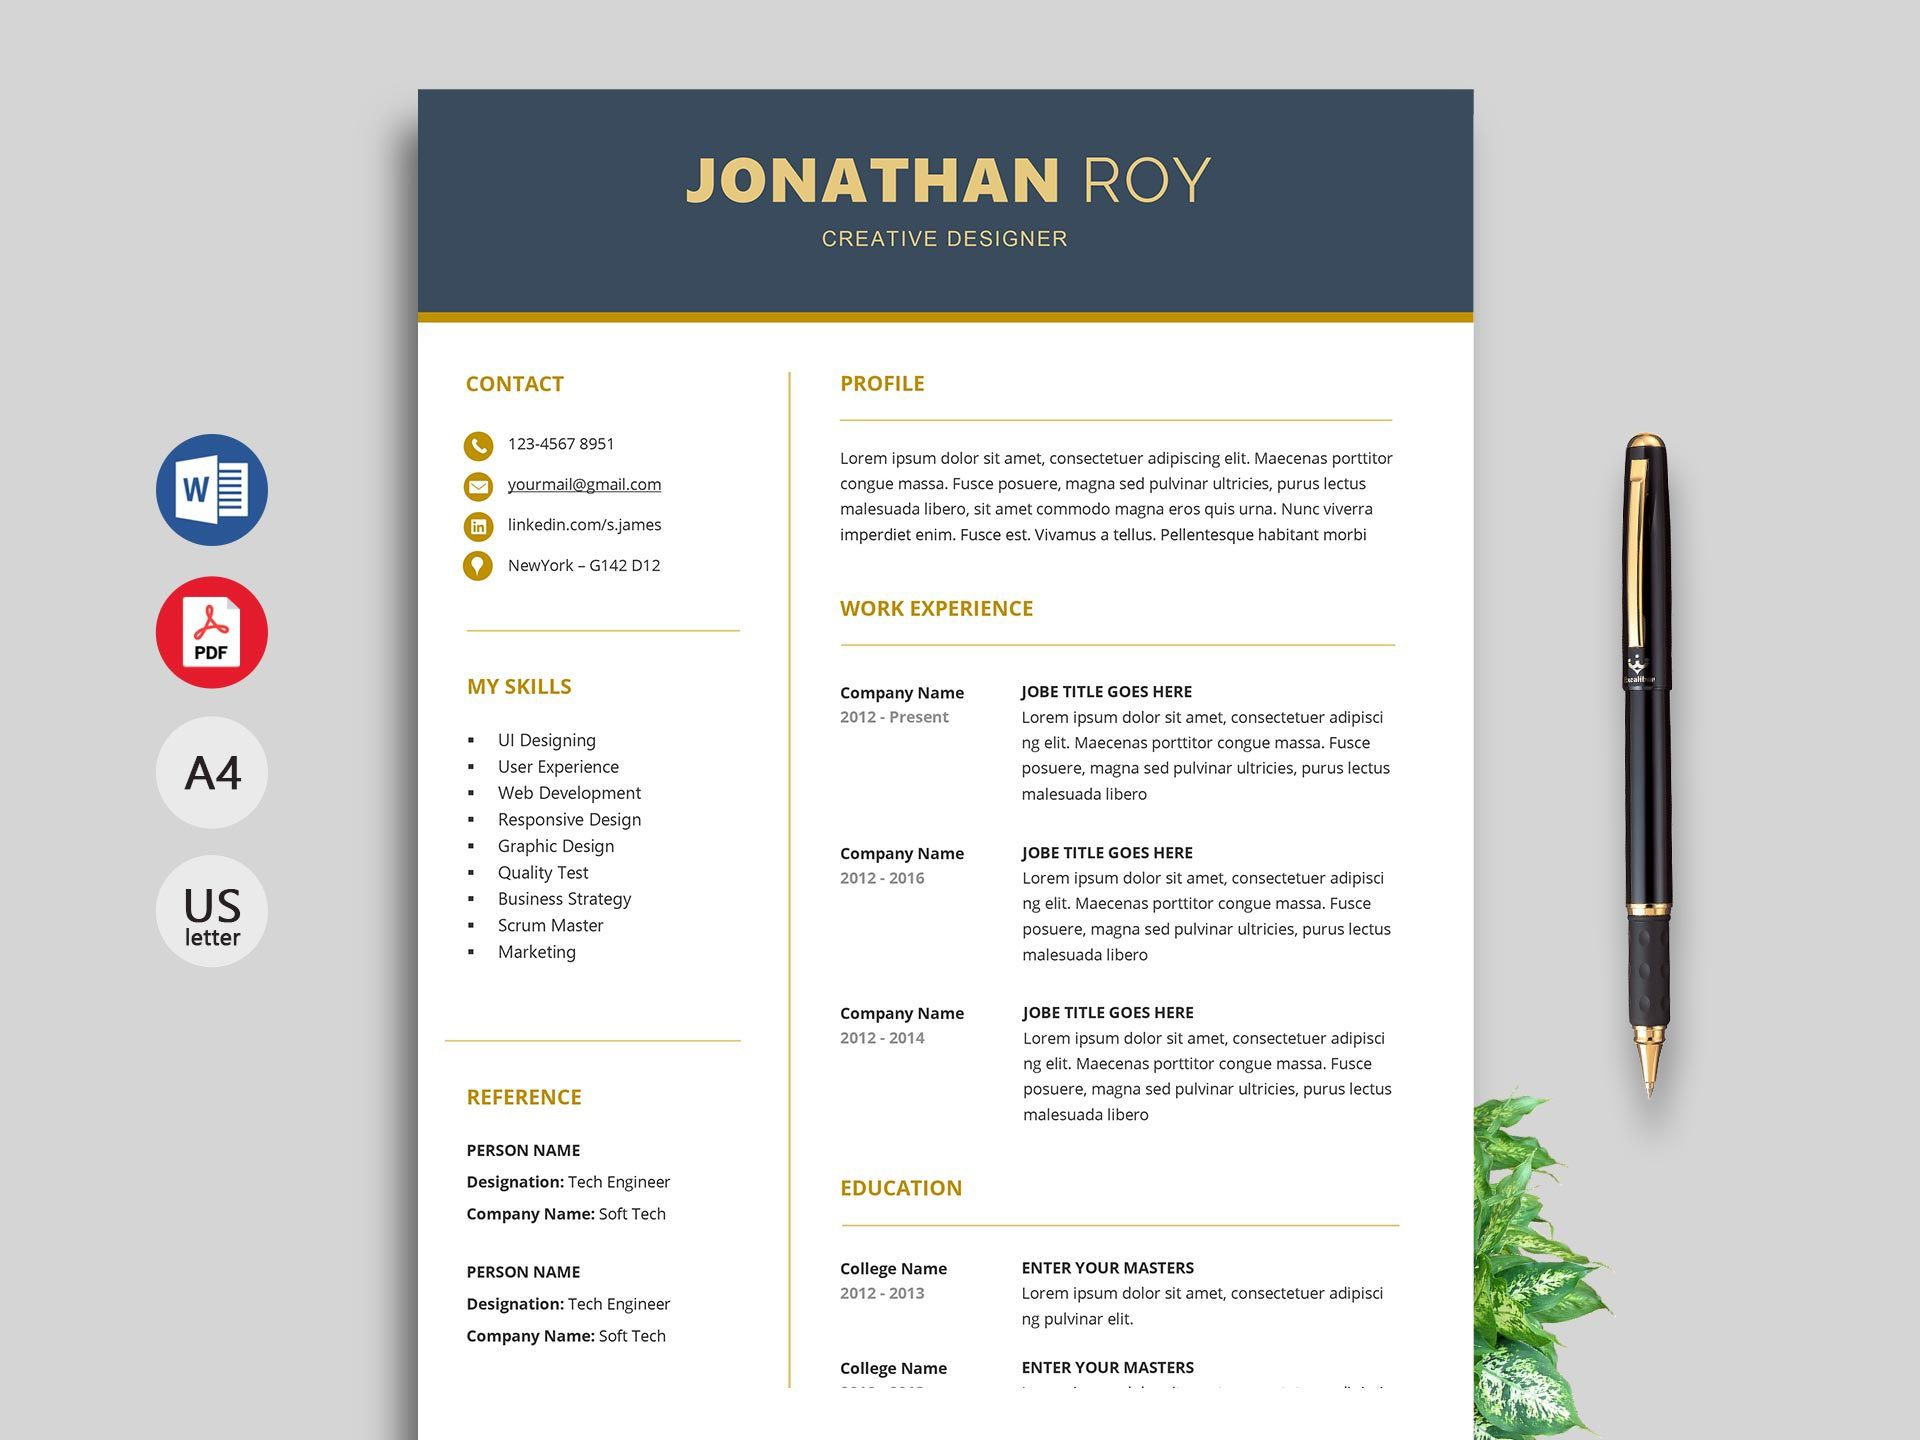 006 Exceptional Free Basic Resume Template Download Design  M Word Quora For Microsoft 2010Full